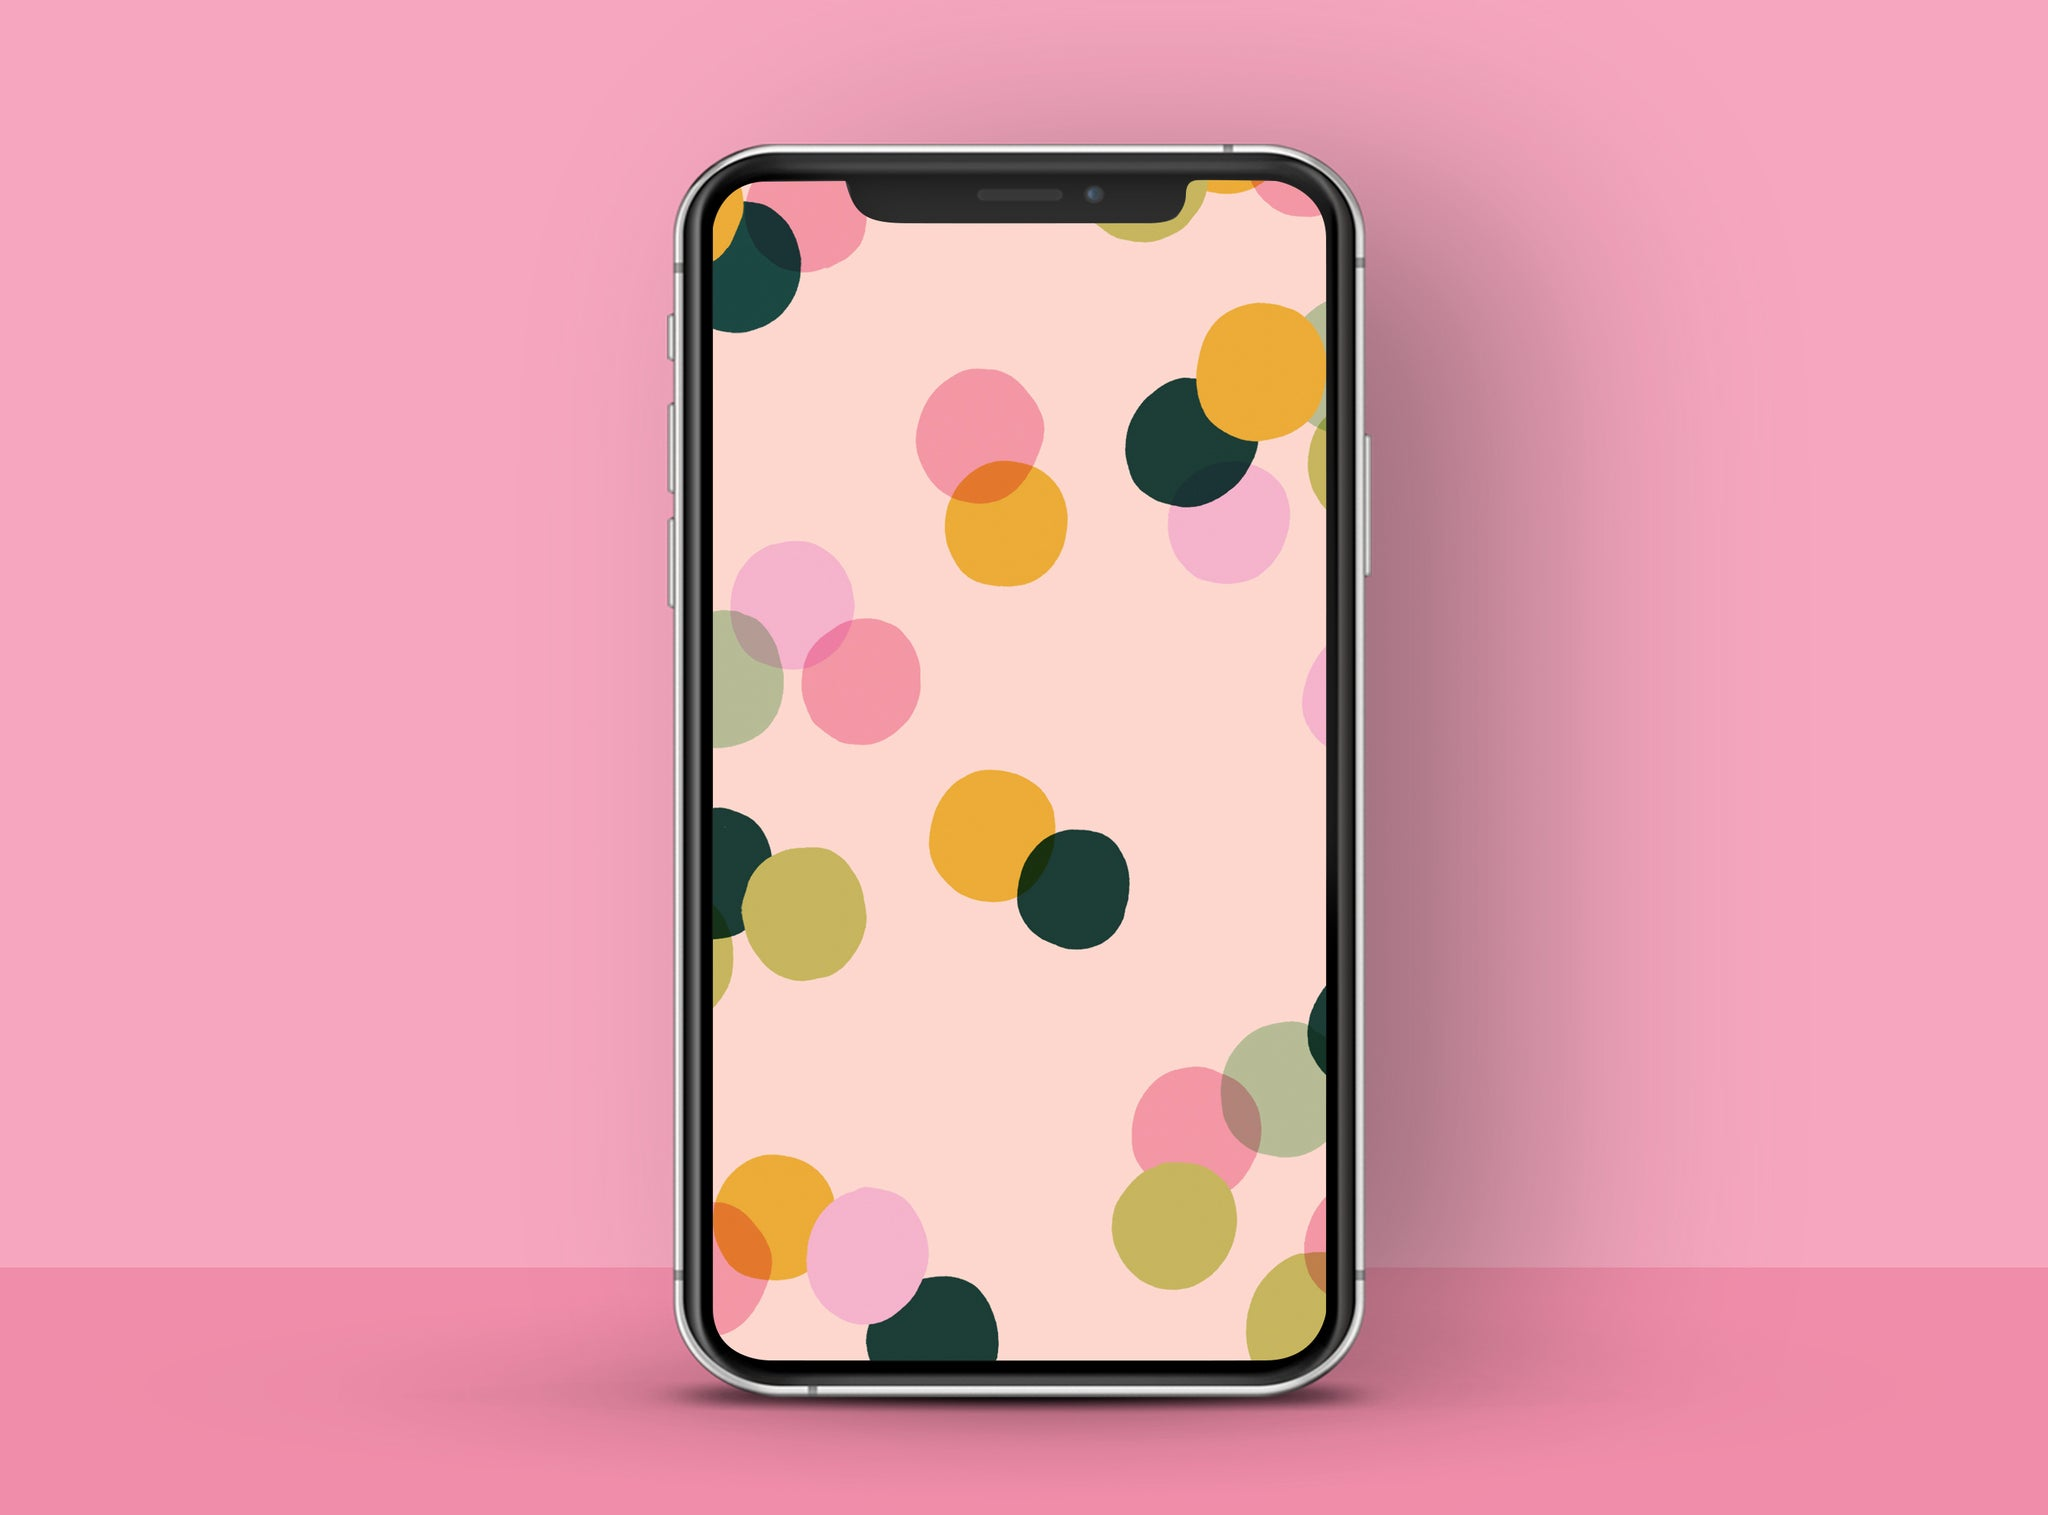 Colourful dotty HD free phone wallpaper | Raspberry Blossom